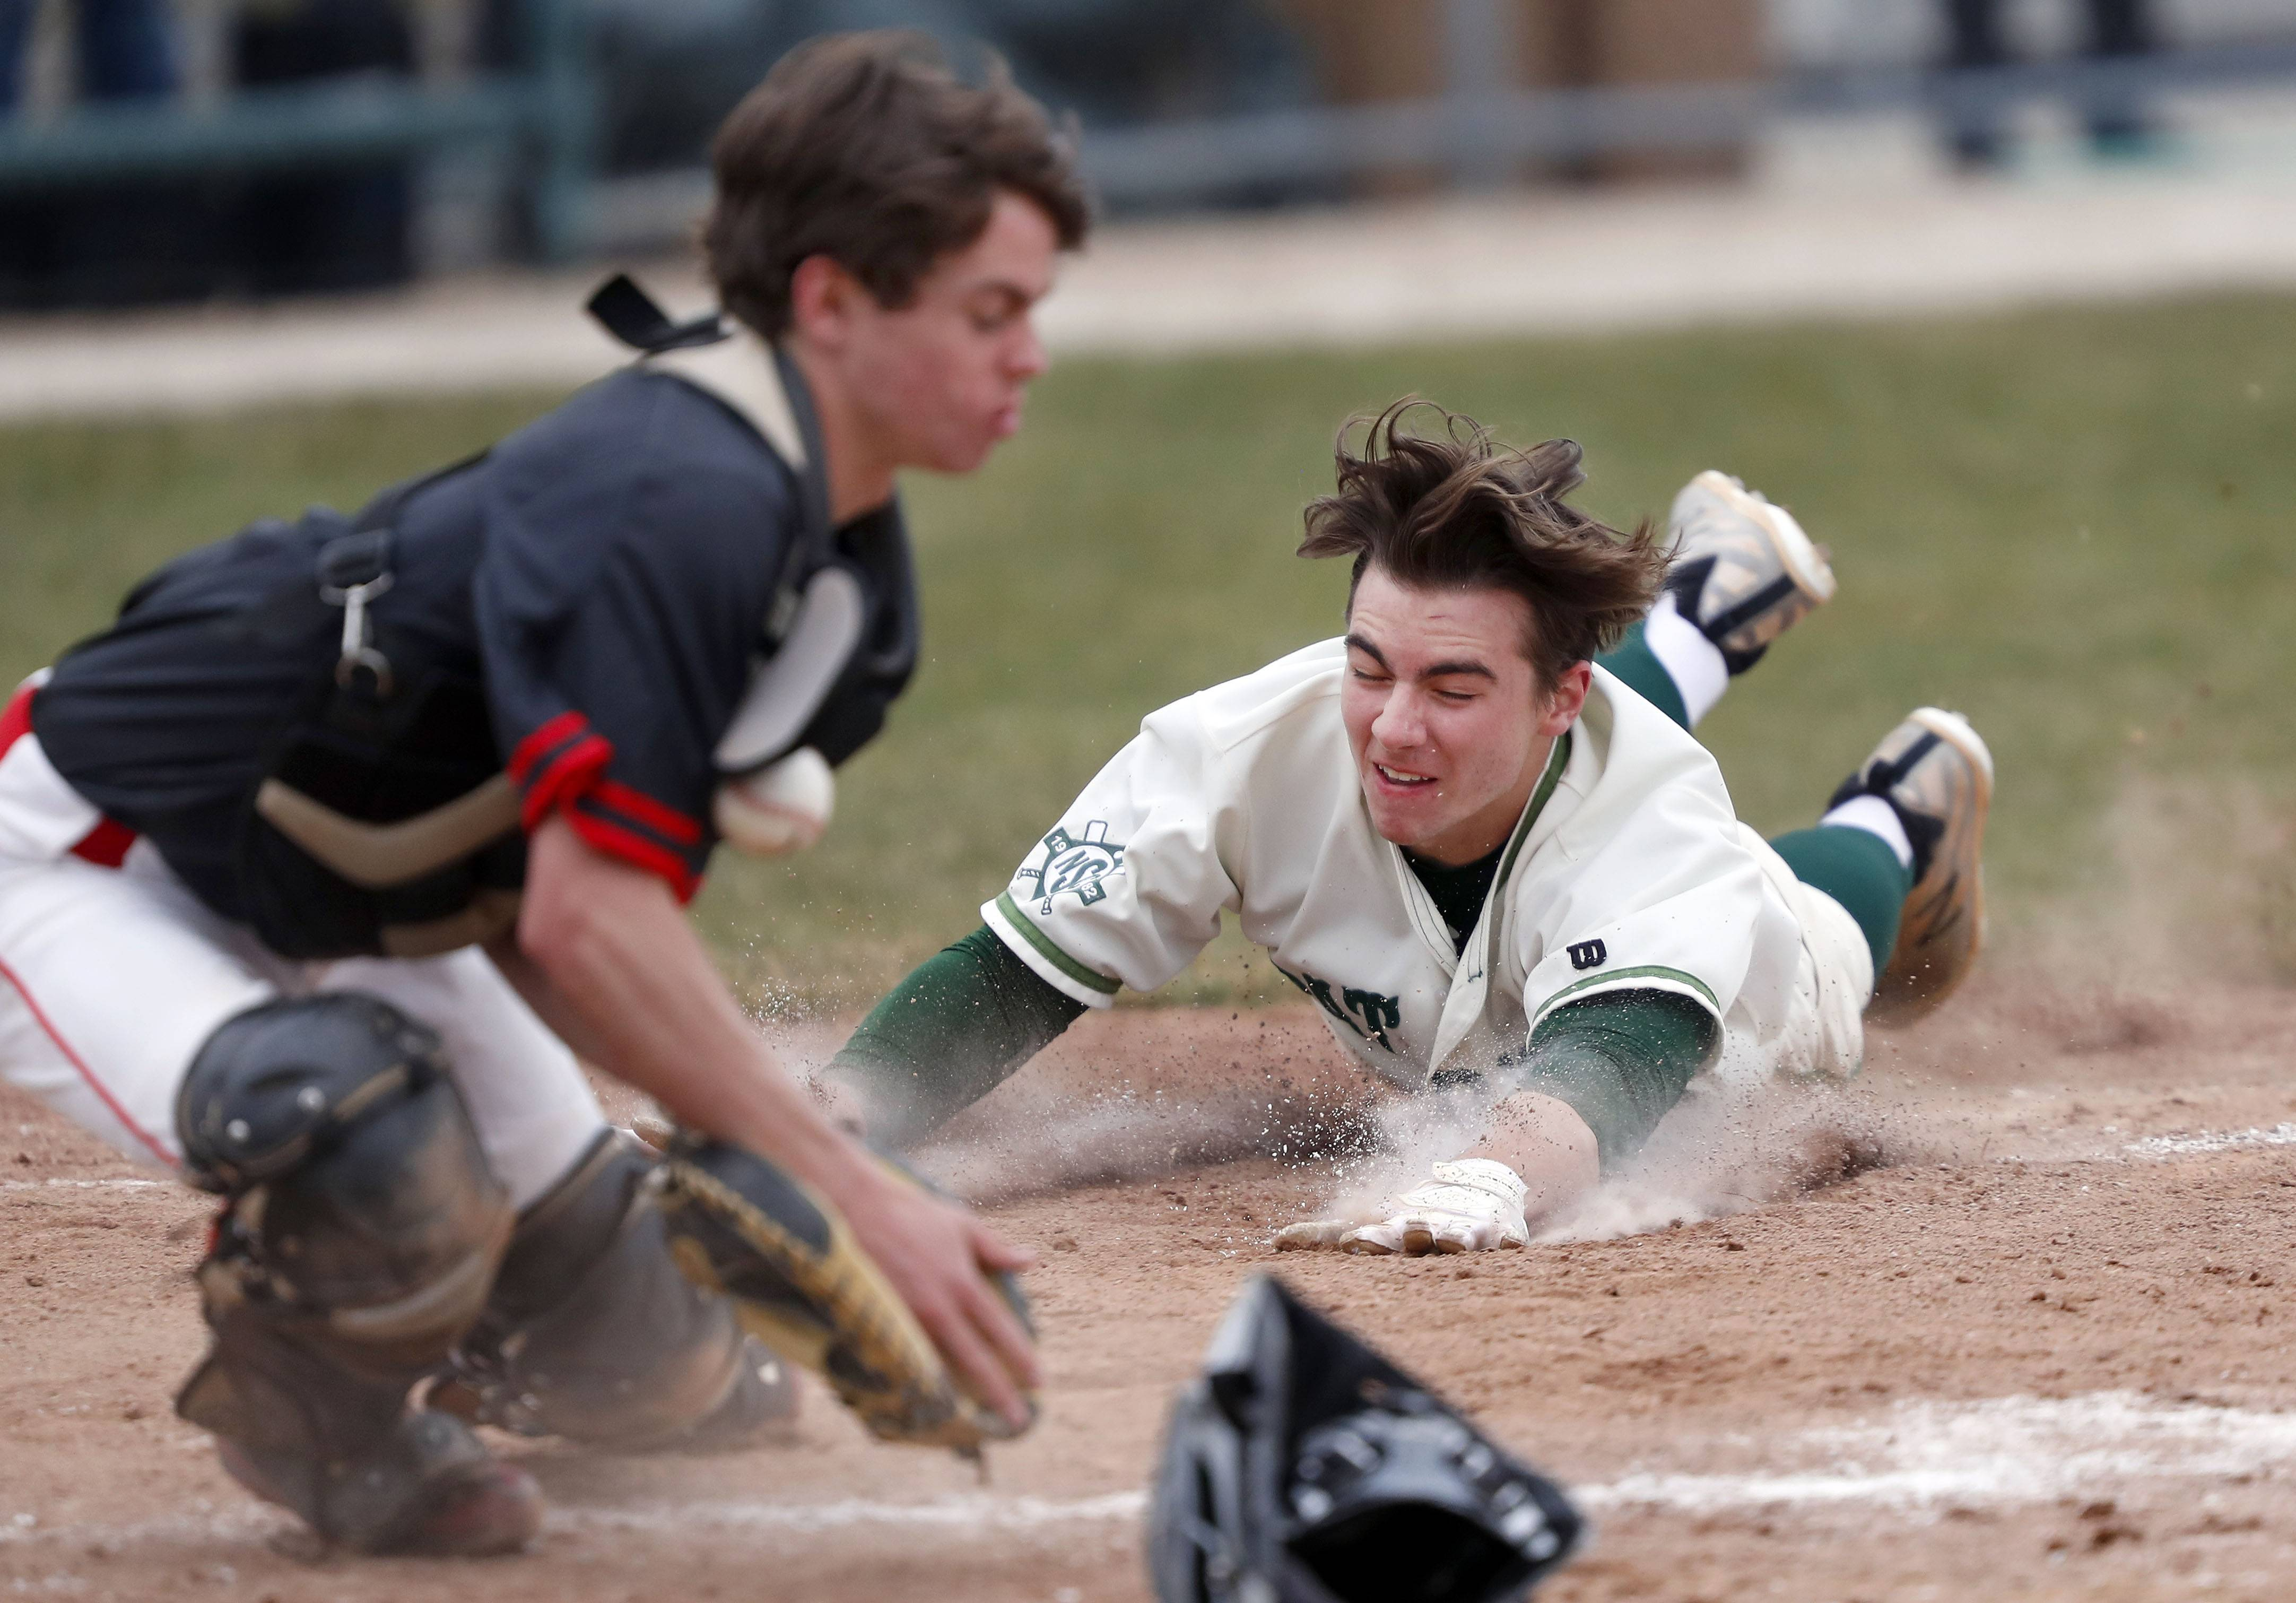 Stevenson's Ryan McElhinny, right, scores as Mundelein's Mason Schaller waits for the throw to the plate Wednesday in Lincolnshire.